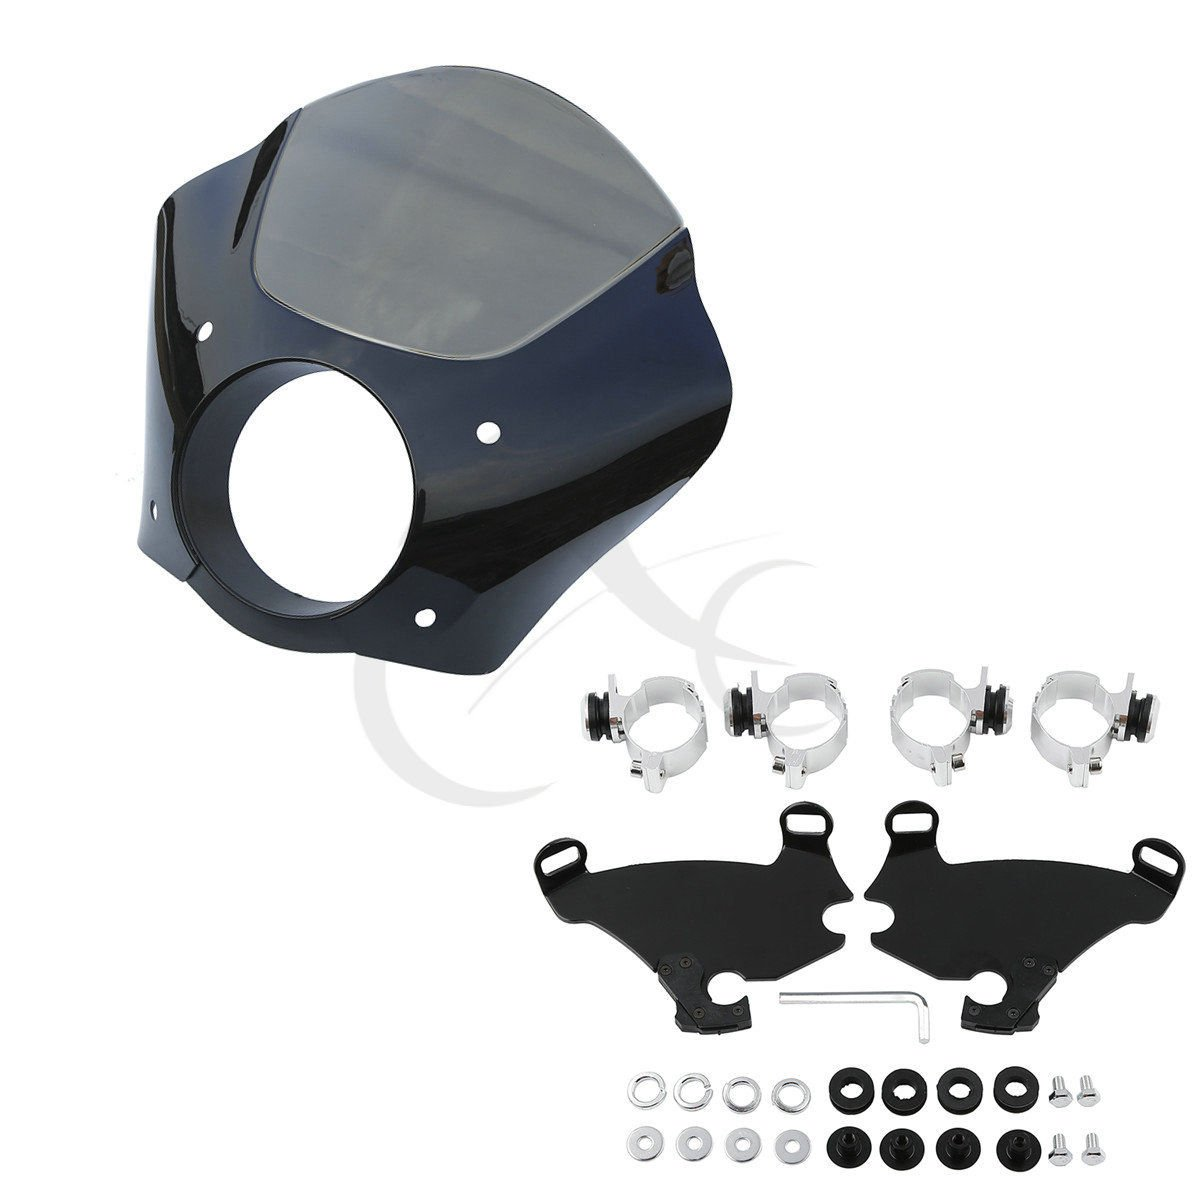 XFMT Gauntlet Fairing & Lock Mount Kit For Harley Dyna FXDL Sportster XL883L 1200X